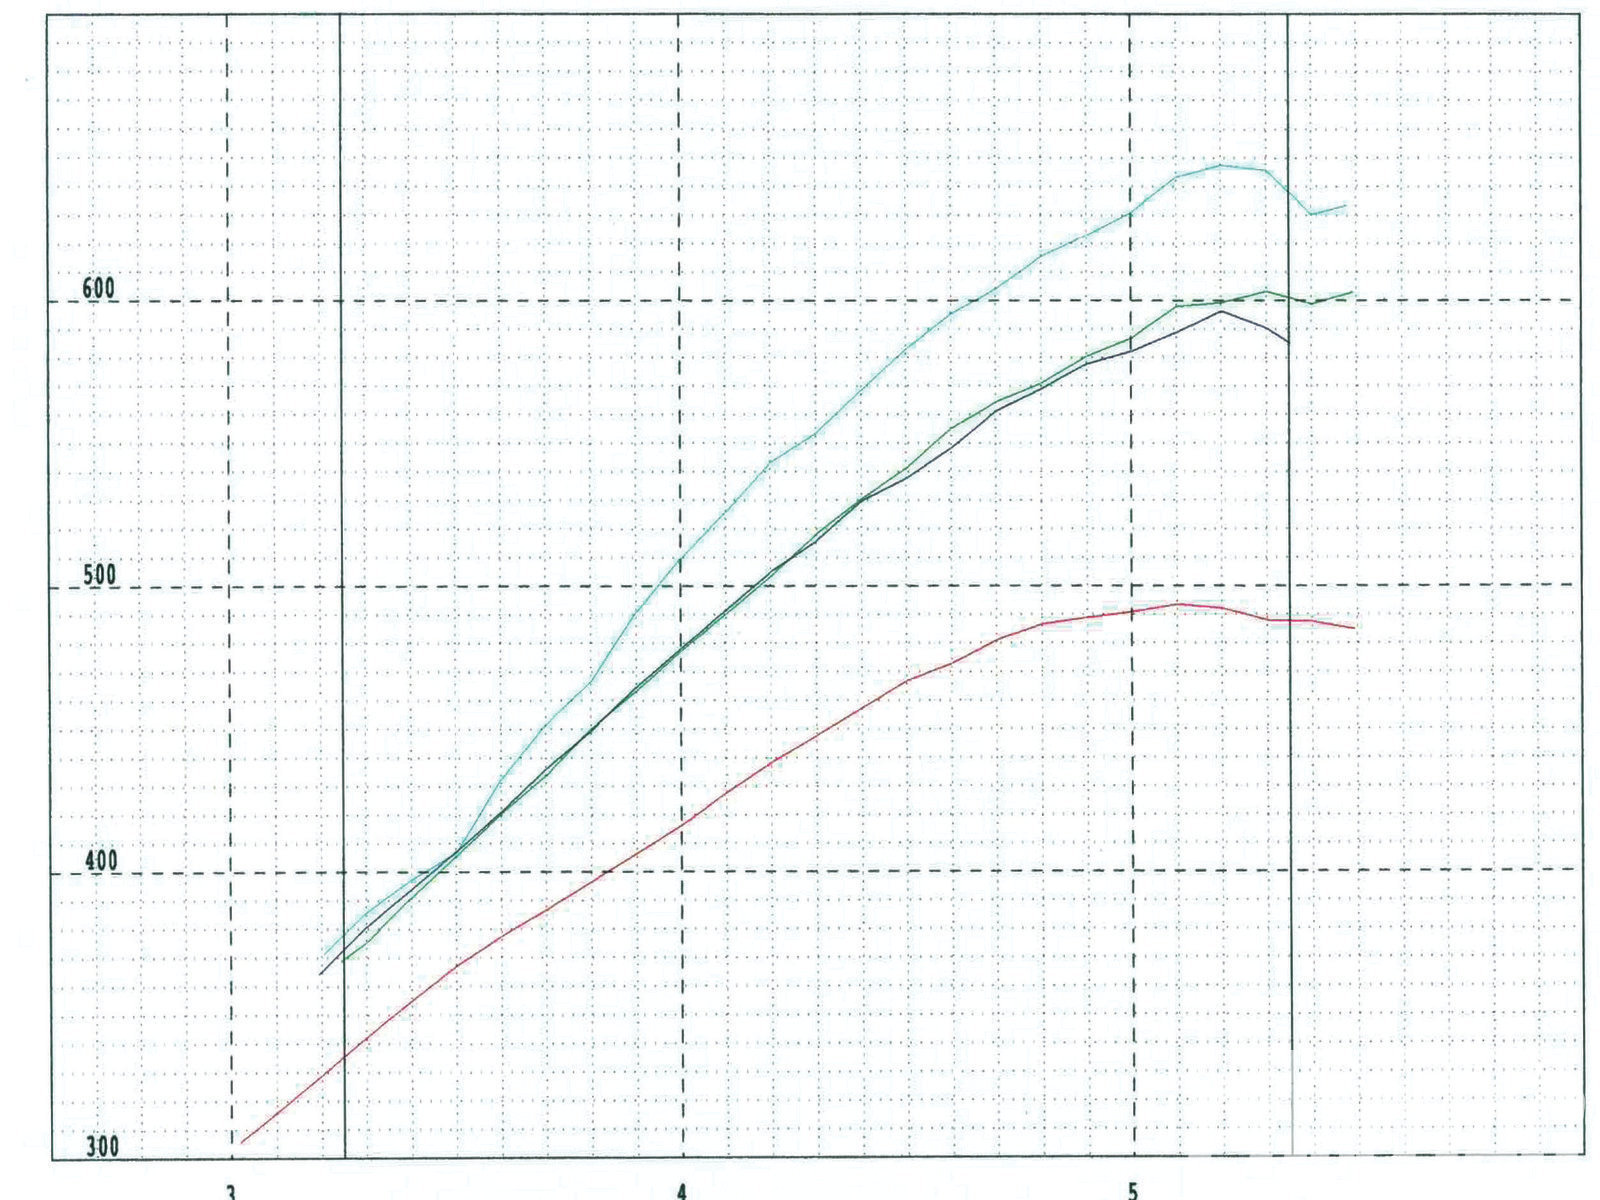 [Corrected Horsepower] 18. The red line represents a normally aspirated pull on 92-octane from our previous oil test. Blue is the baseline with the supercharger, 4.00-inch pulley, 92-octane, and no methanol injection; green is the 4.00-inch pulley, 92-octane, with methanol injection; aqua is the 3.25-inch pulley, 100-octane fuel, and methanol injection.